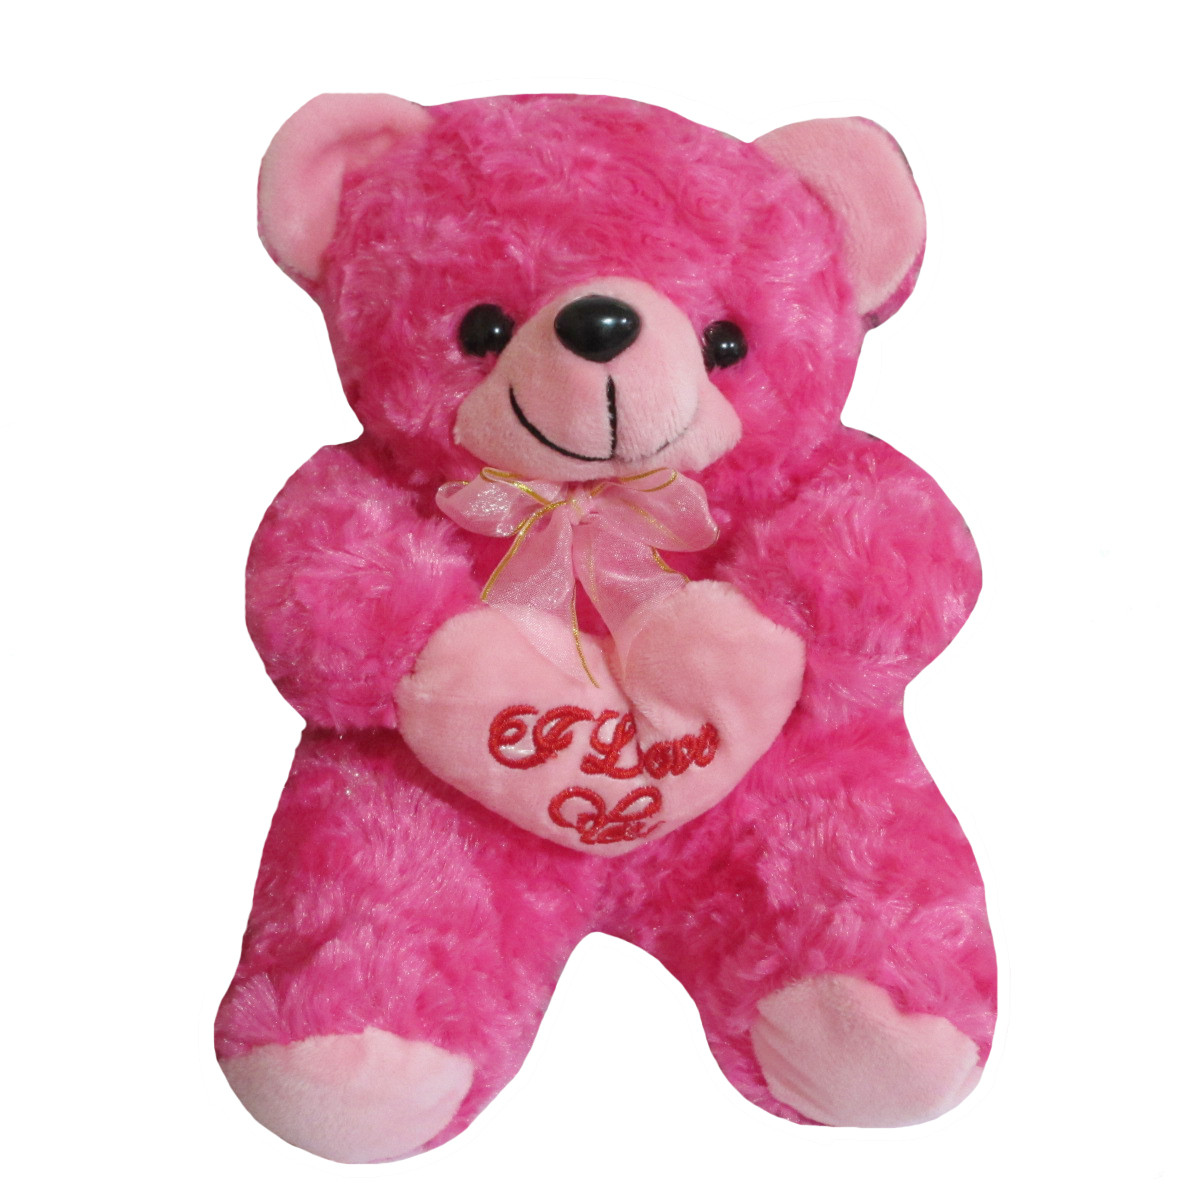 Boneka Teddy Bear Beruang Bantal Hati I Love You Rasfur Mawar Pink Tua